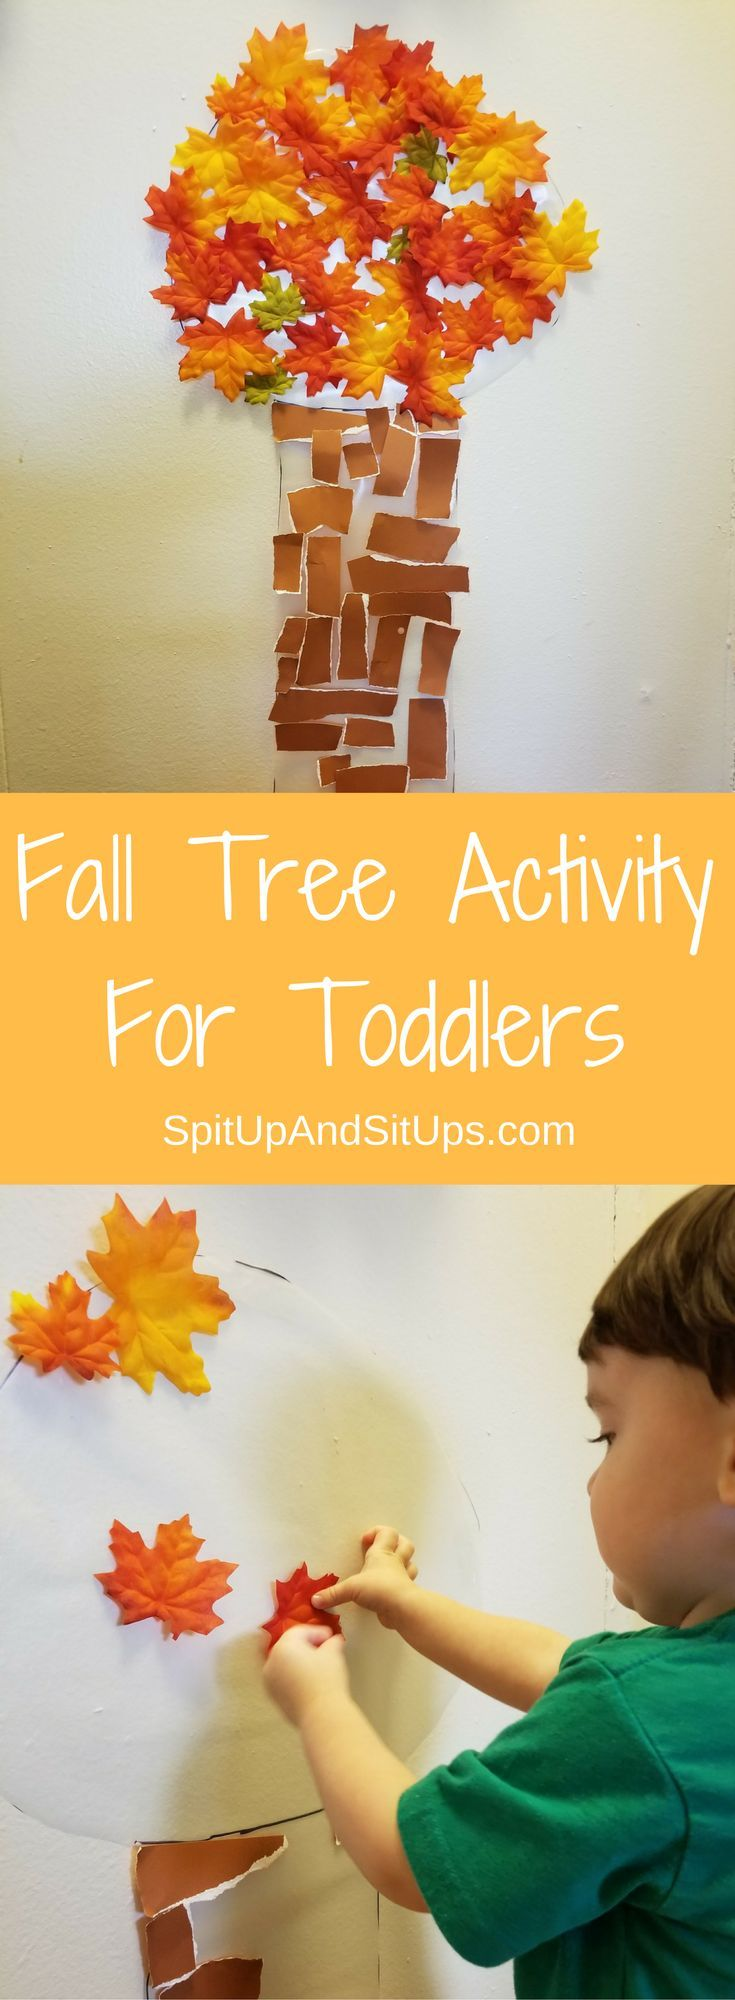 Fall Tree Activity For Toddlers | Spit Up And Sit Ups  fall tree activity for toddlers, fun for toddlers, indoor activity for toddlers, toddler crafts, fall craft, fall crafts for kids, toddler fall crafts, fall tree craft, fall tree diy, fun for kids, activities for toddlers in fall, fall activities for kids